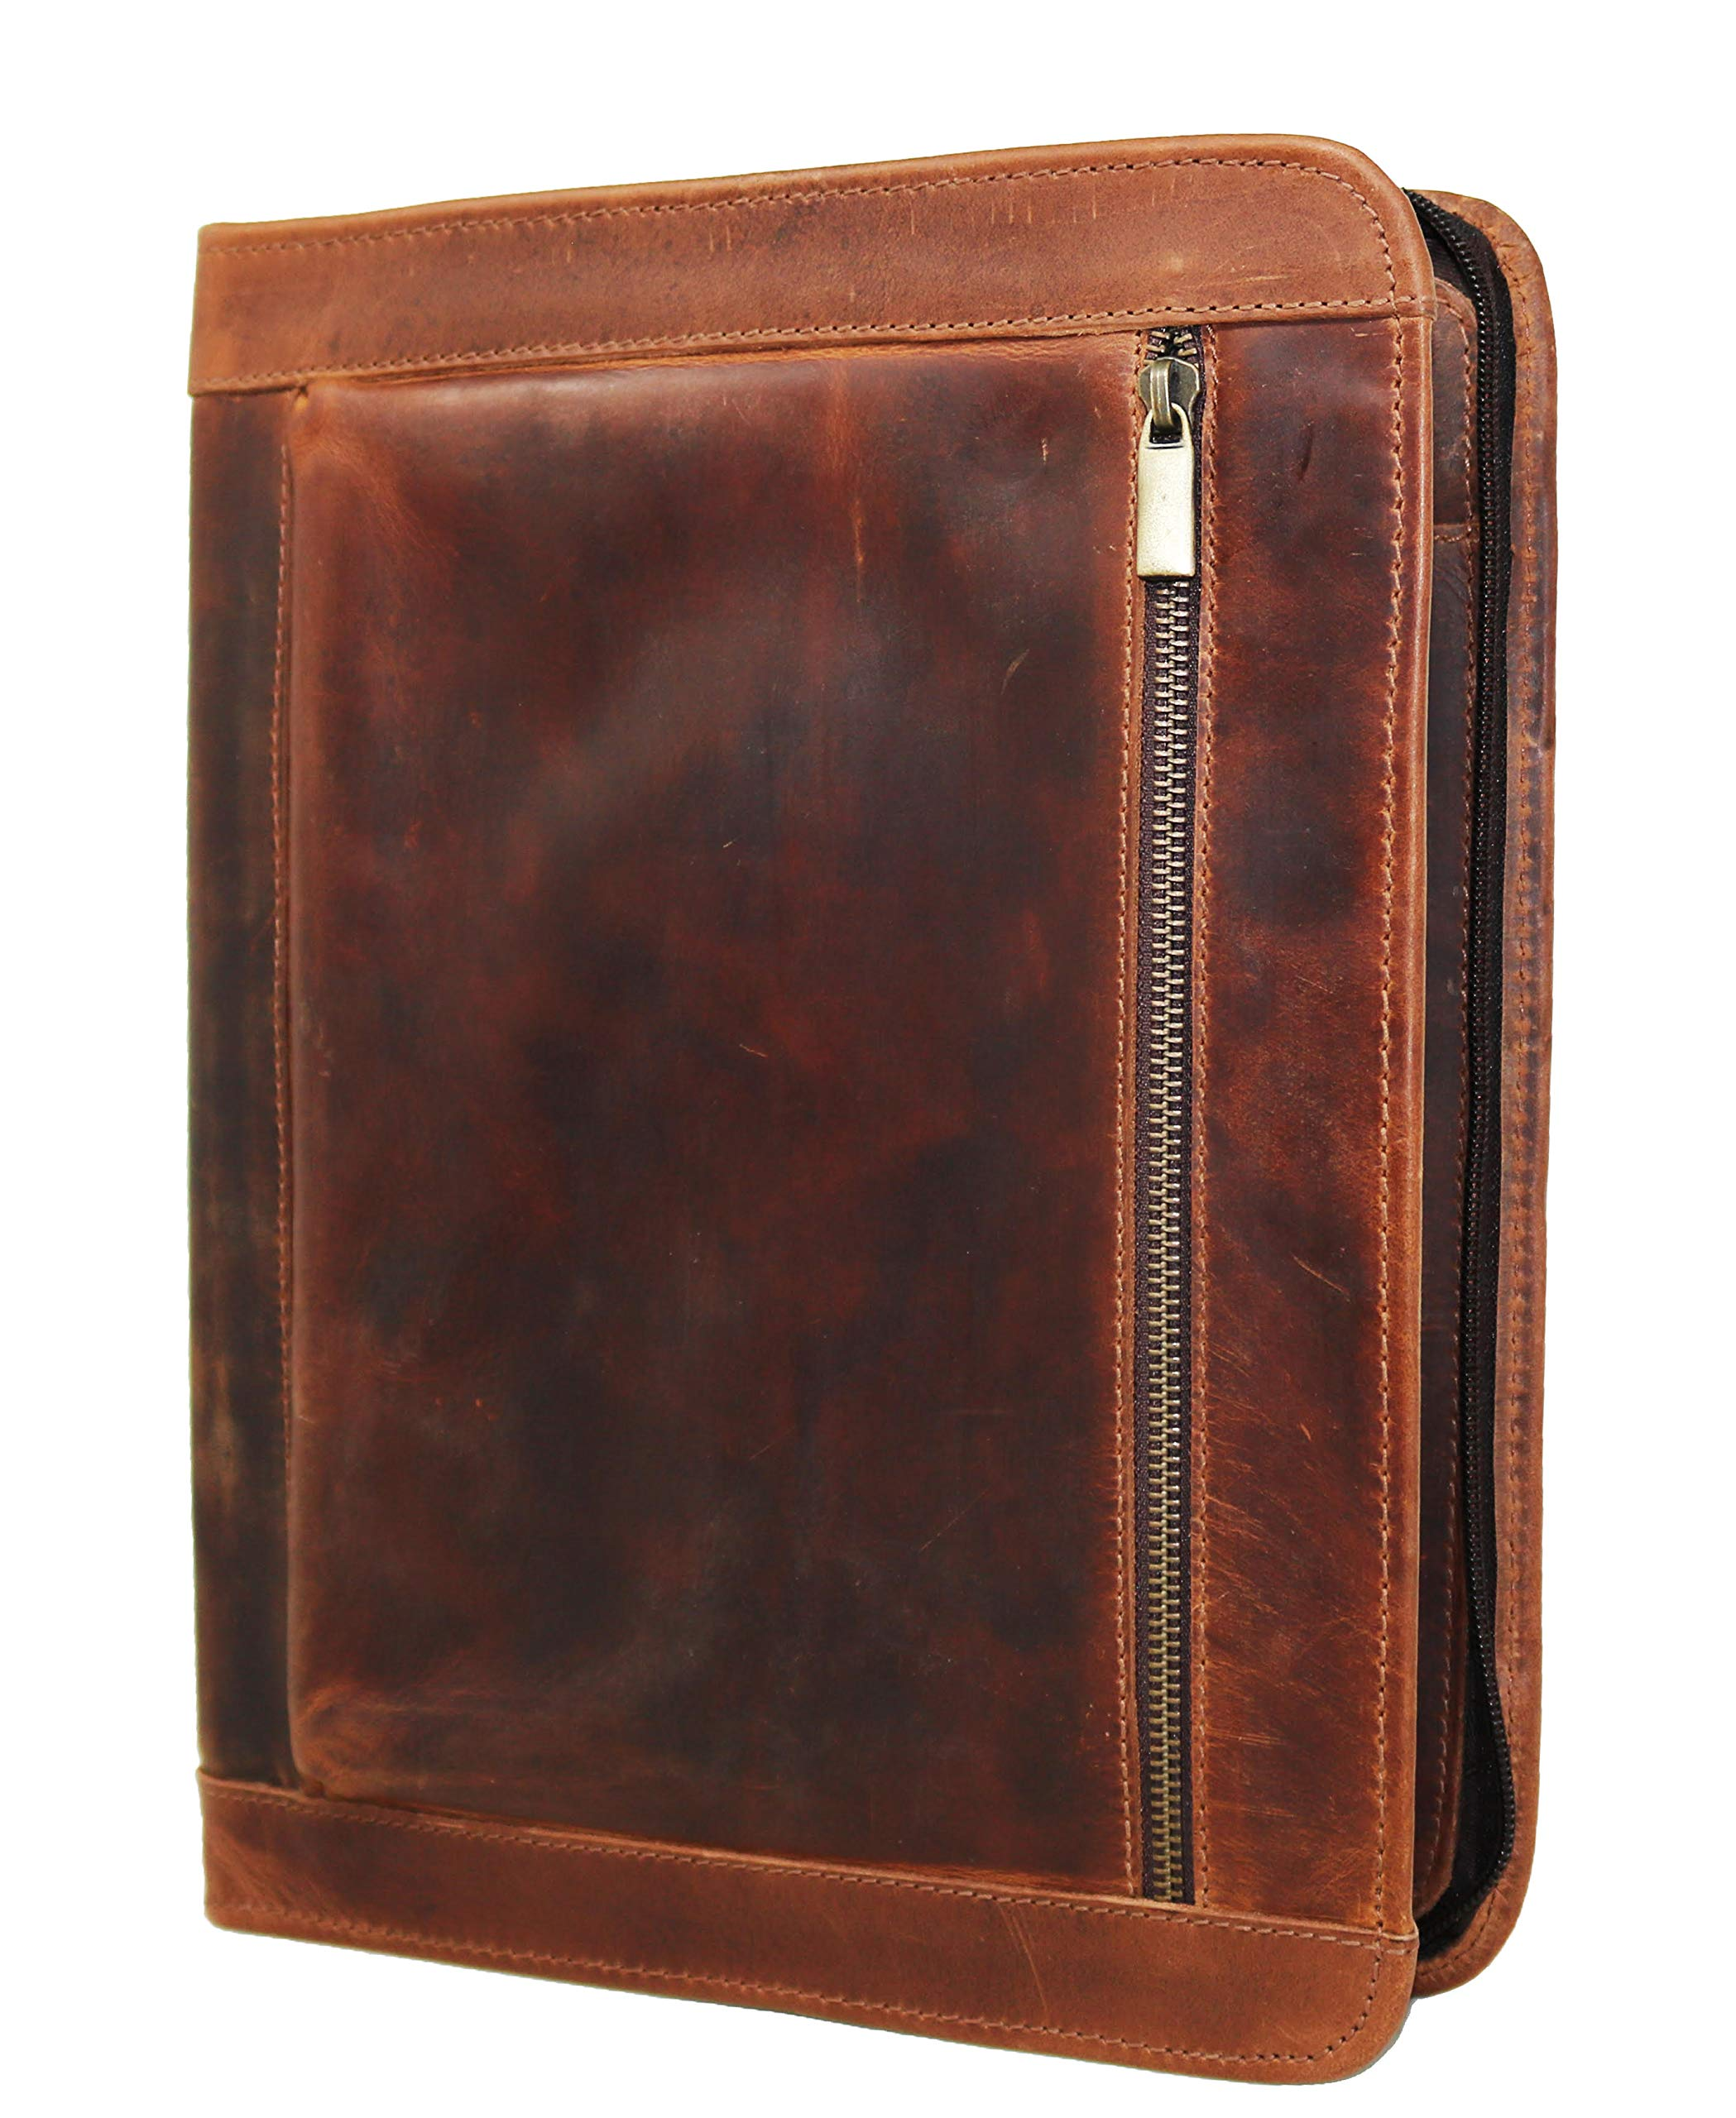 Handmade Genuine Leather Business Portfolio by Jaald | Professional Organizer Men & Women | Durable Leather Padfolio with Sleeves for documents & Notepad Compatible with Ipad pro 12.9''